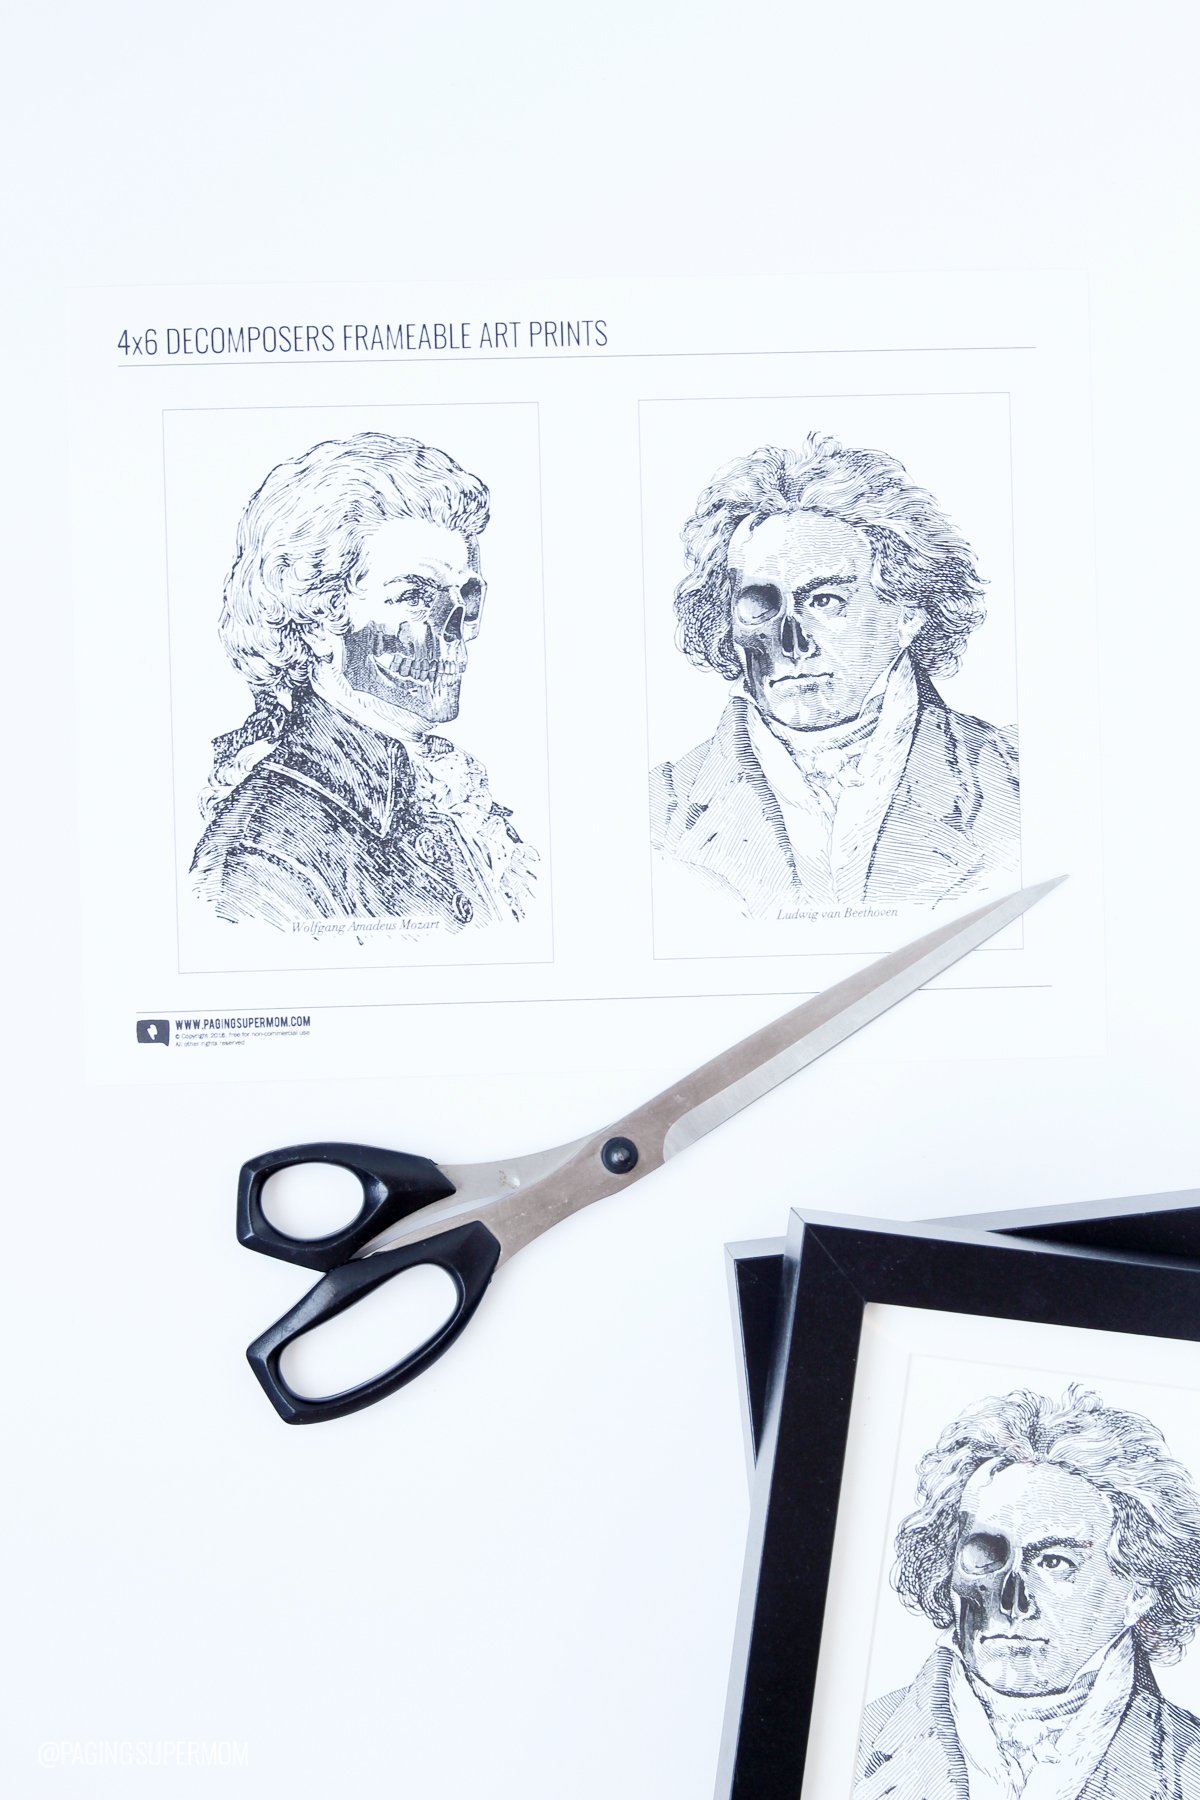 Free Halloween decor prints - Zombie Composers Beethoven and Mozart - free prints from @PagingSupermoms